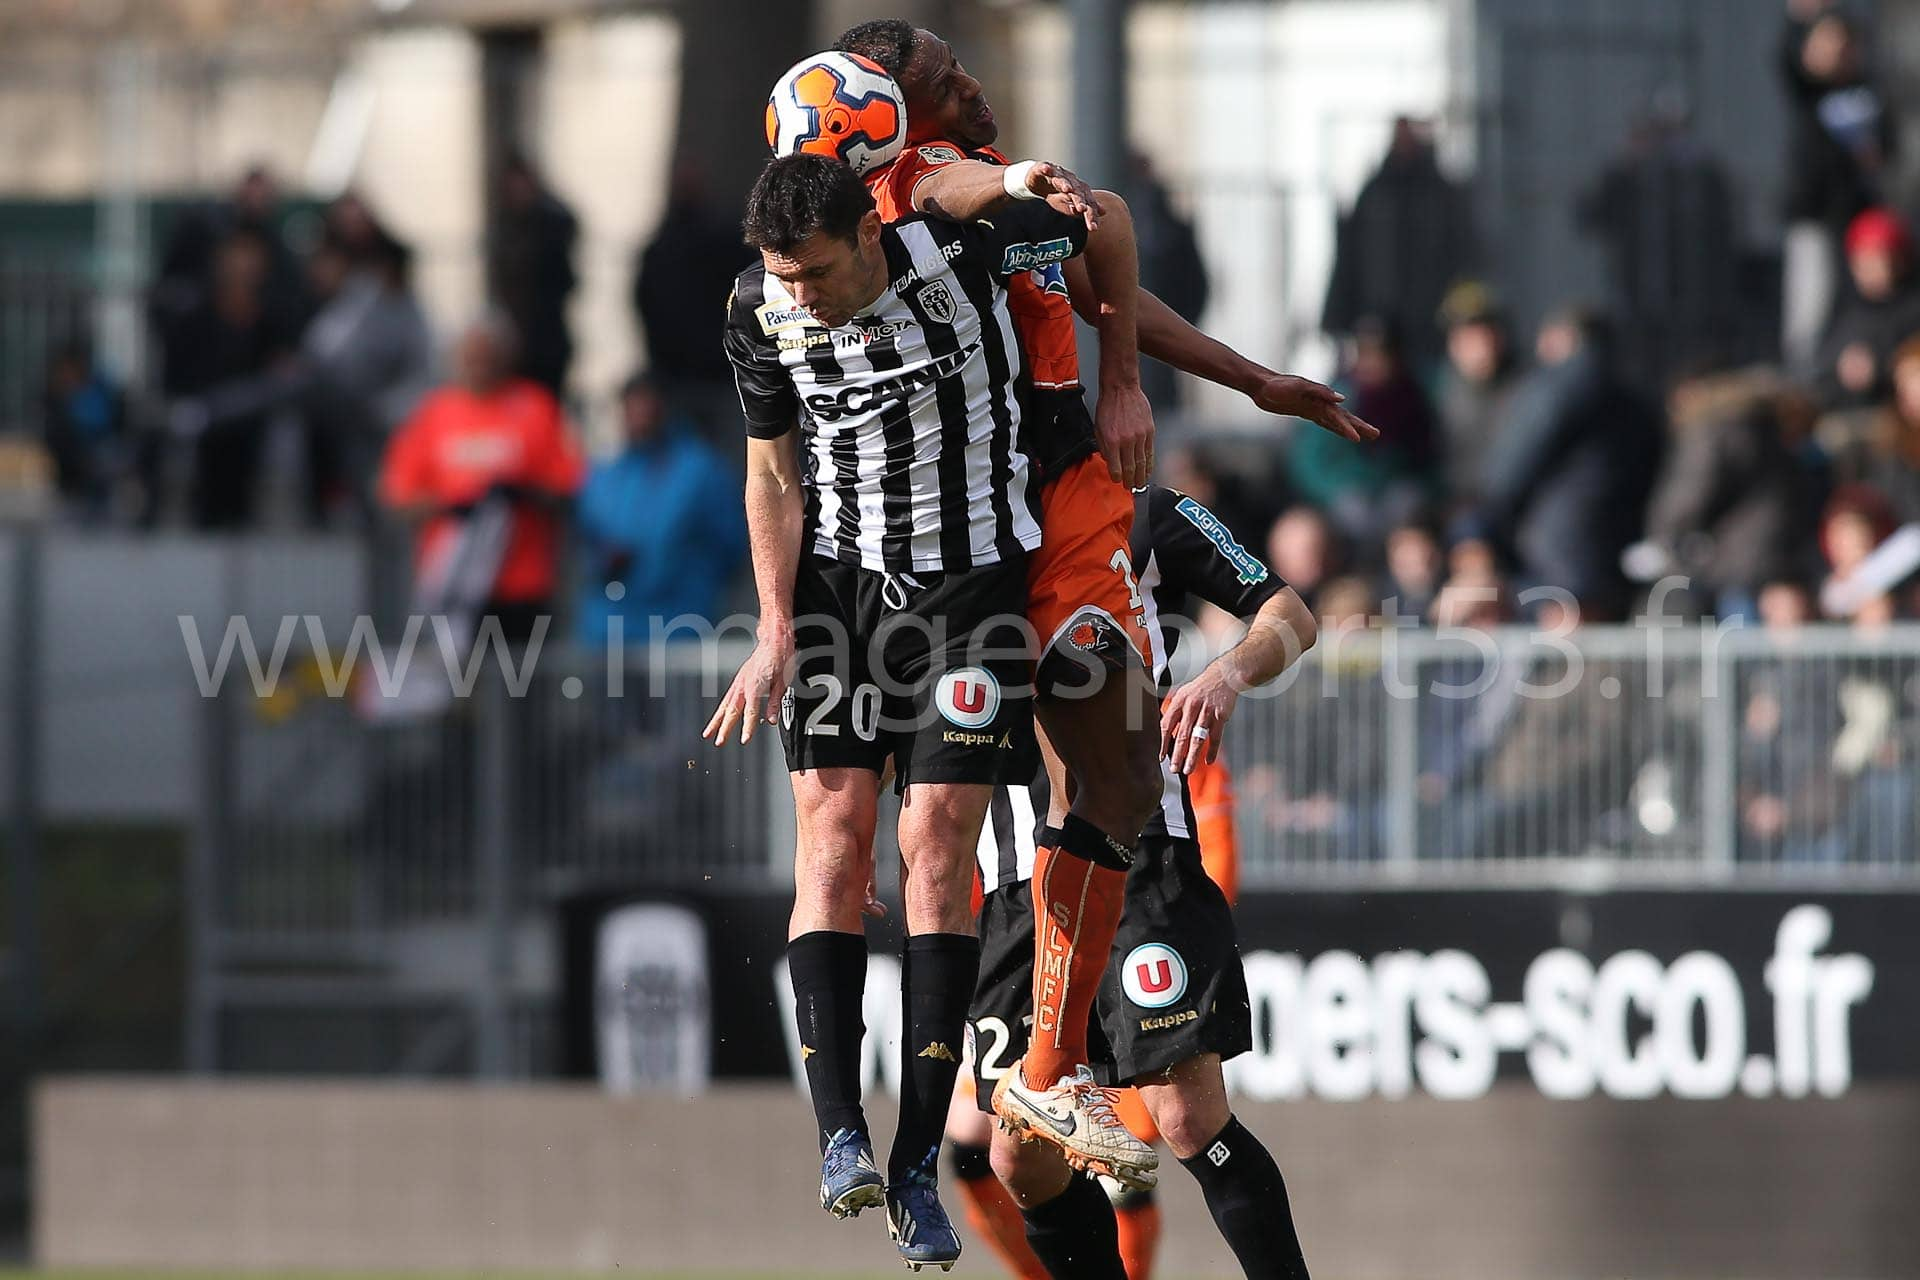 Charles DIERS (Angers SCO), Hassane ALLA (Stade Lavallois)